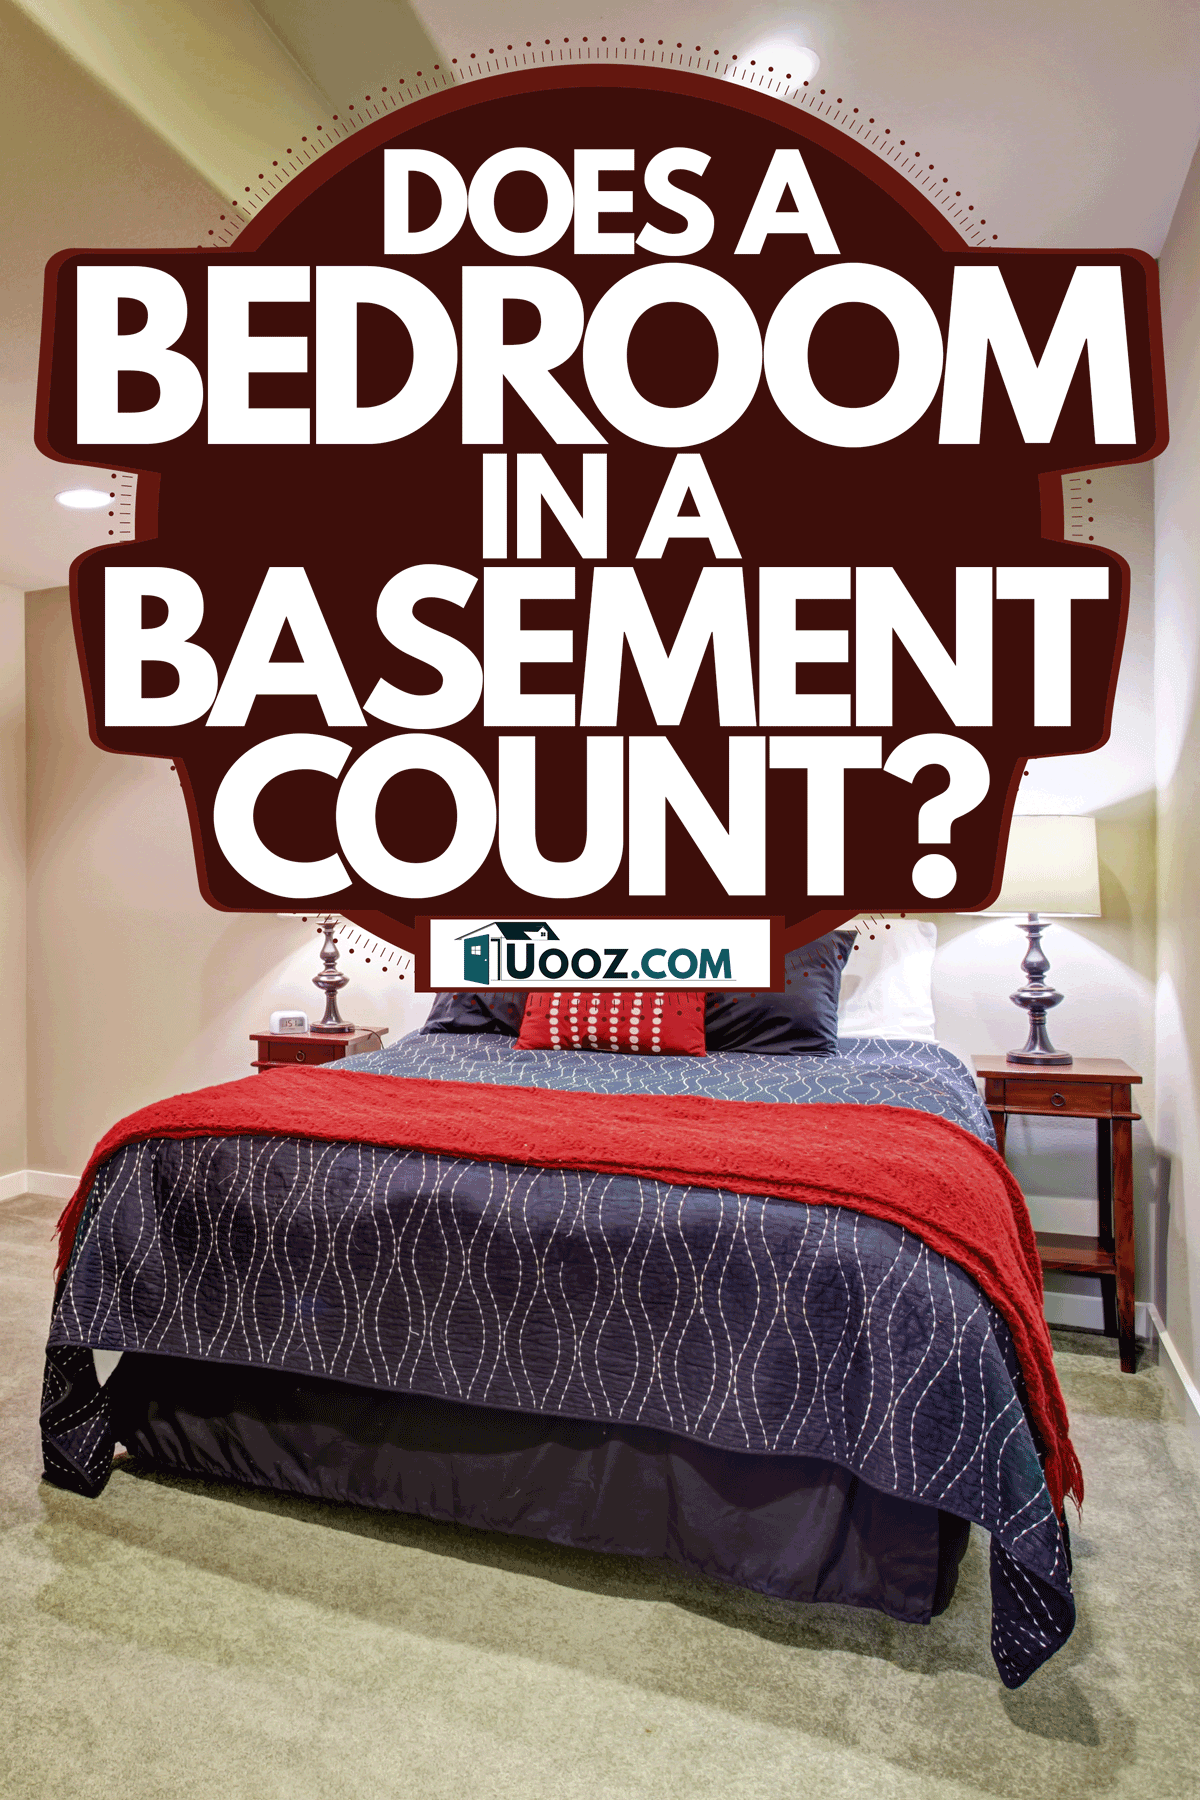 A guest basement bedroom with cream painted walls, carpeted flooring, and two end tables with lamps, Does a Bedroom in a Basement Count?